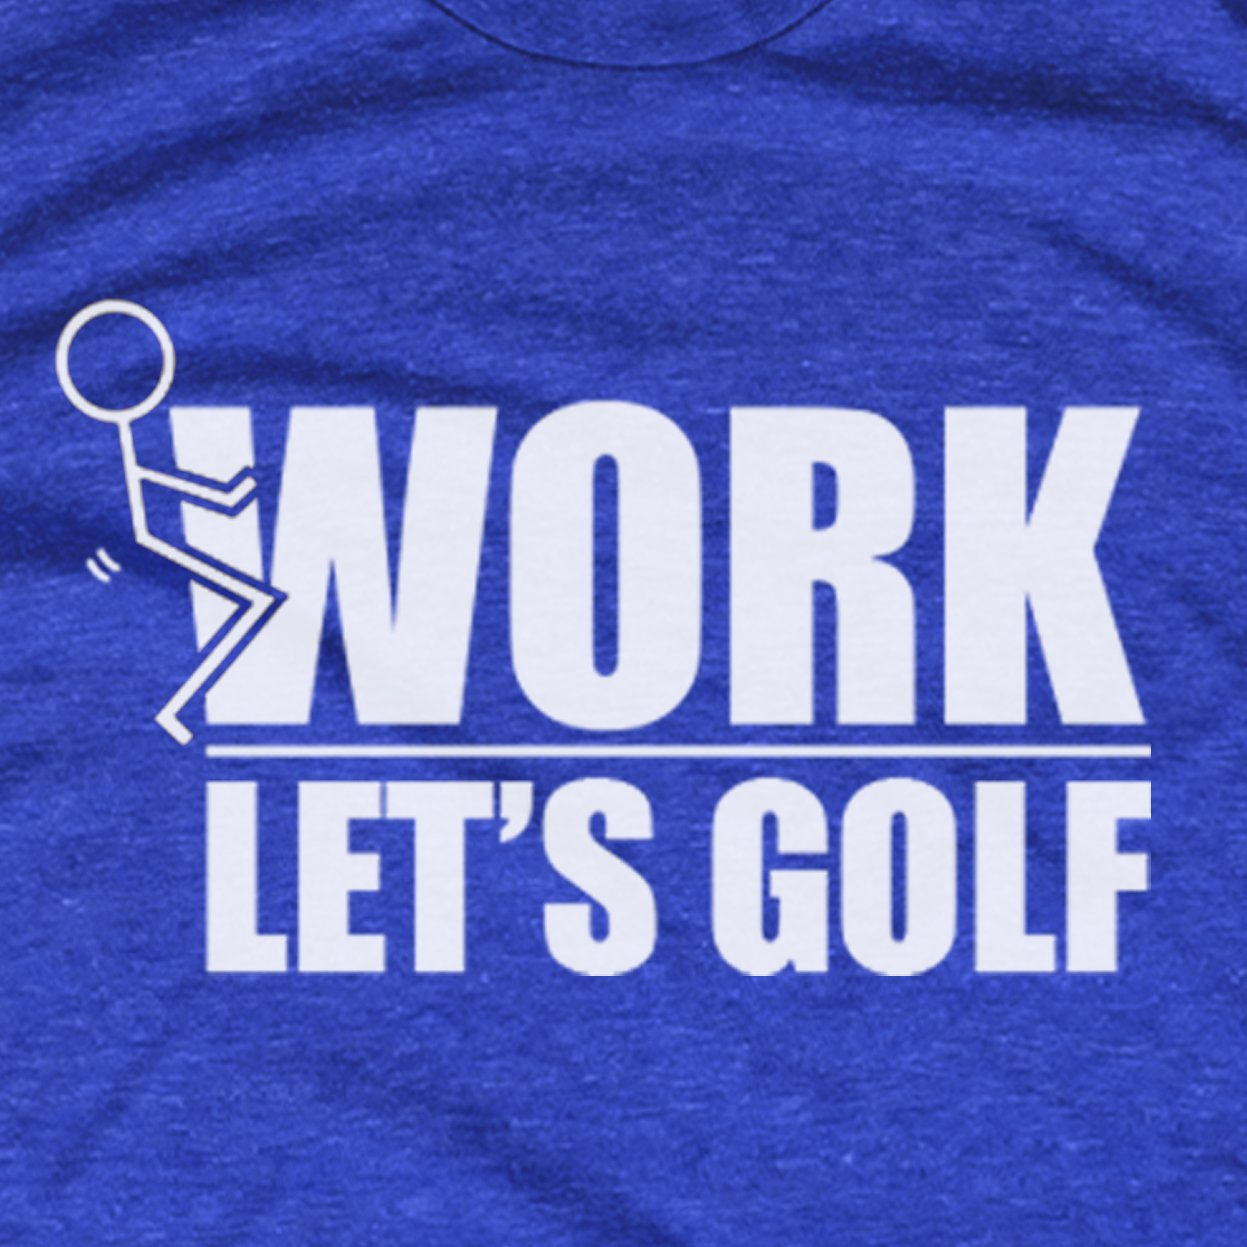 F@#k Work Let's Golf t-shirt